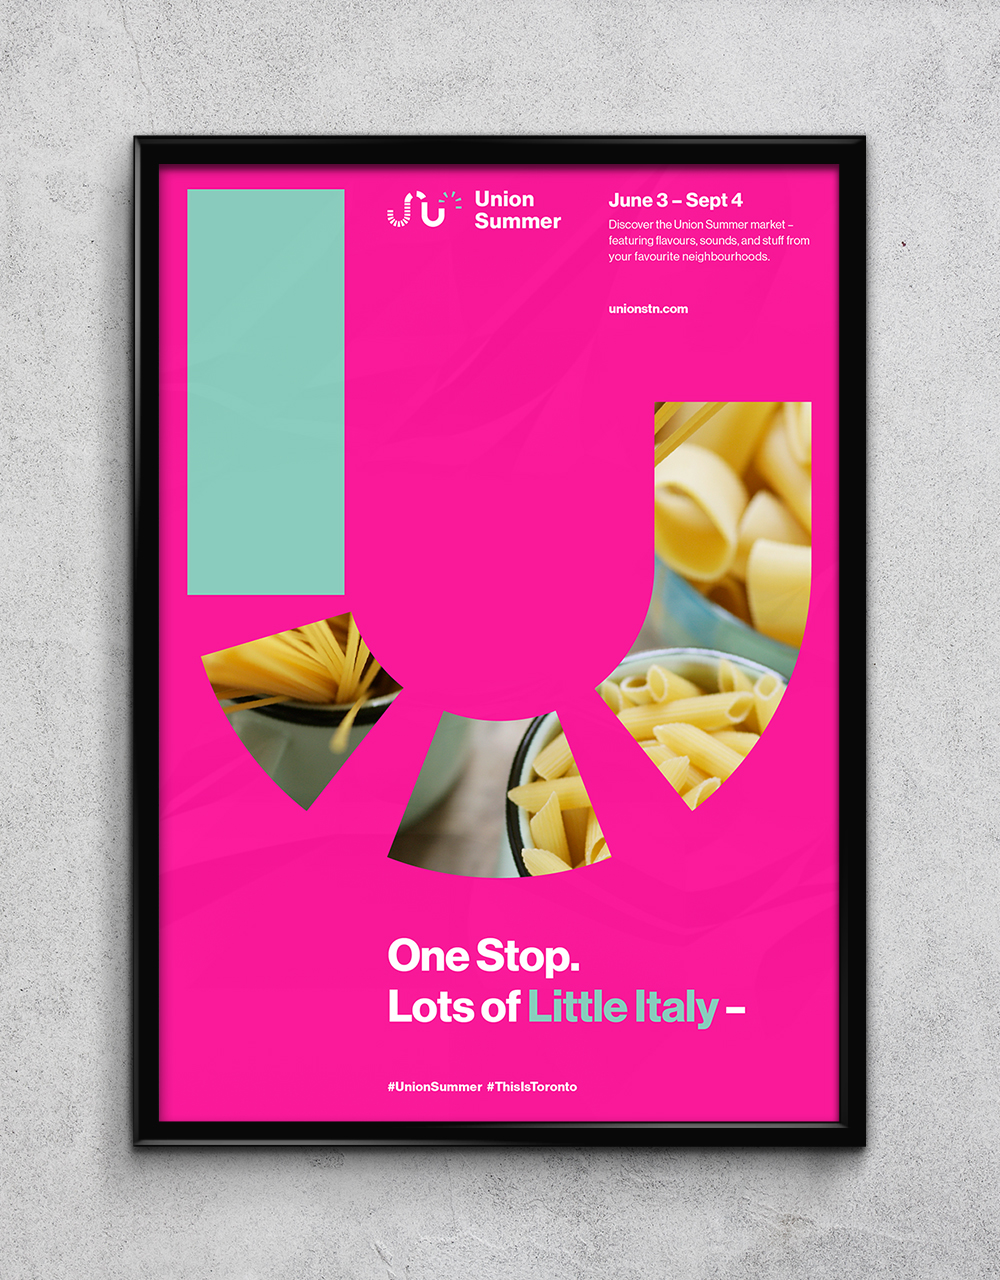 UNION_Poster Mockup Frame-3-lil italy.jpg